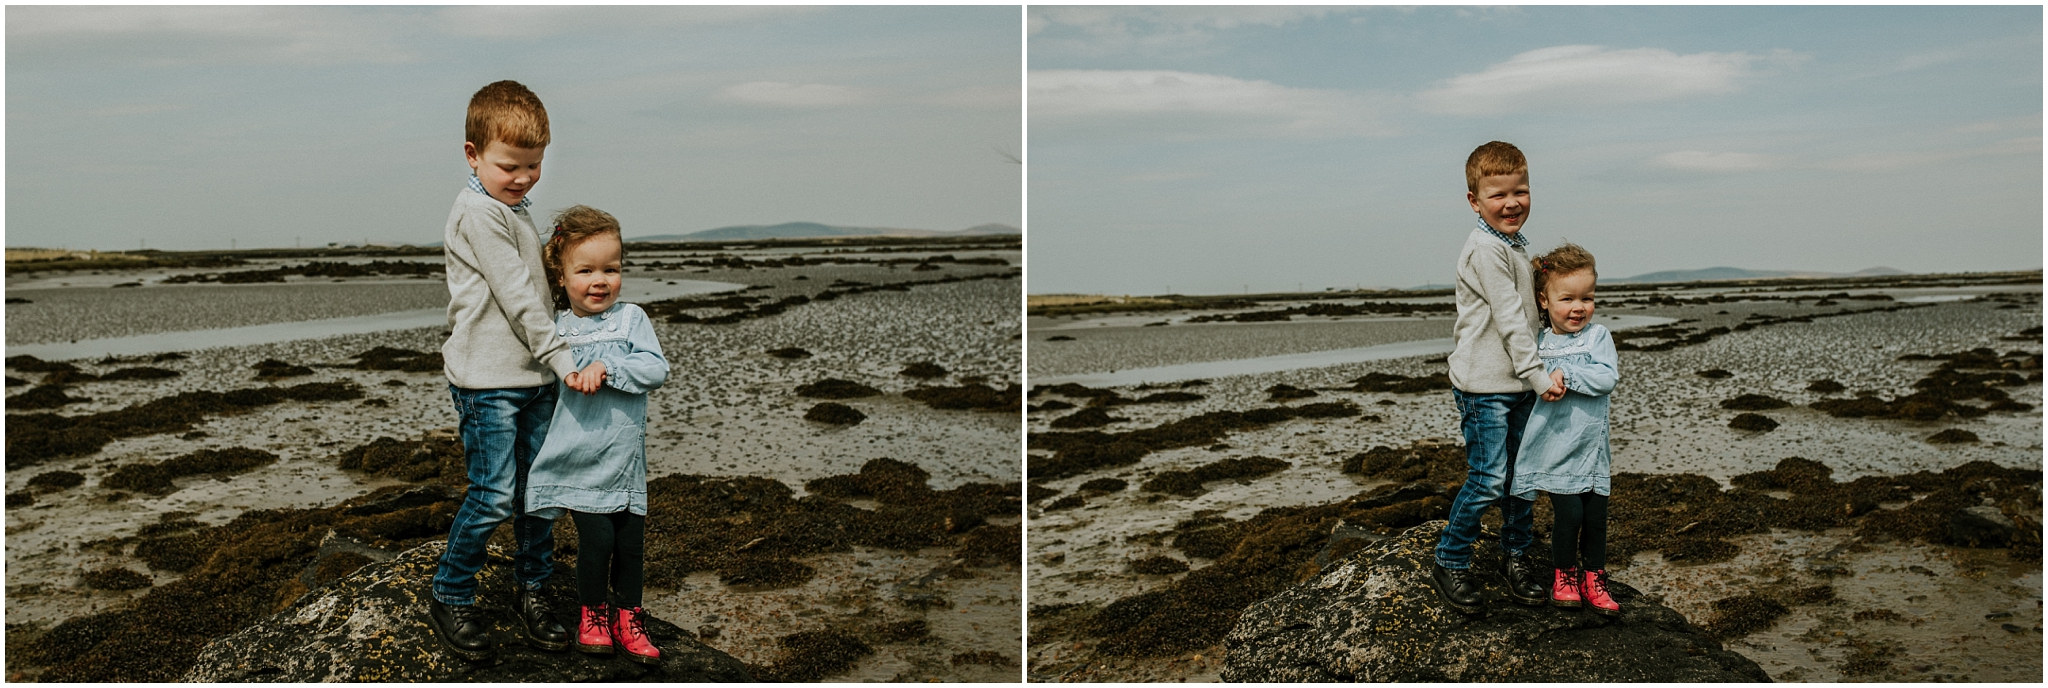 isle_of_benbecula_family_photography_0008.jpg